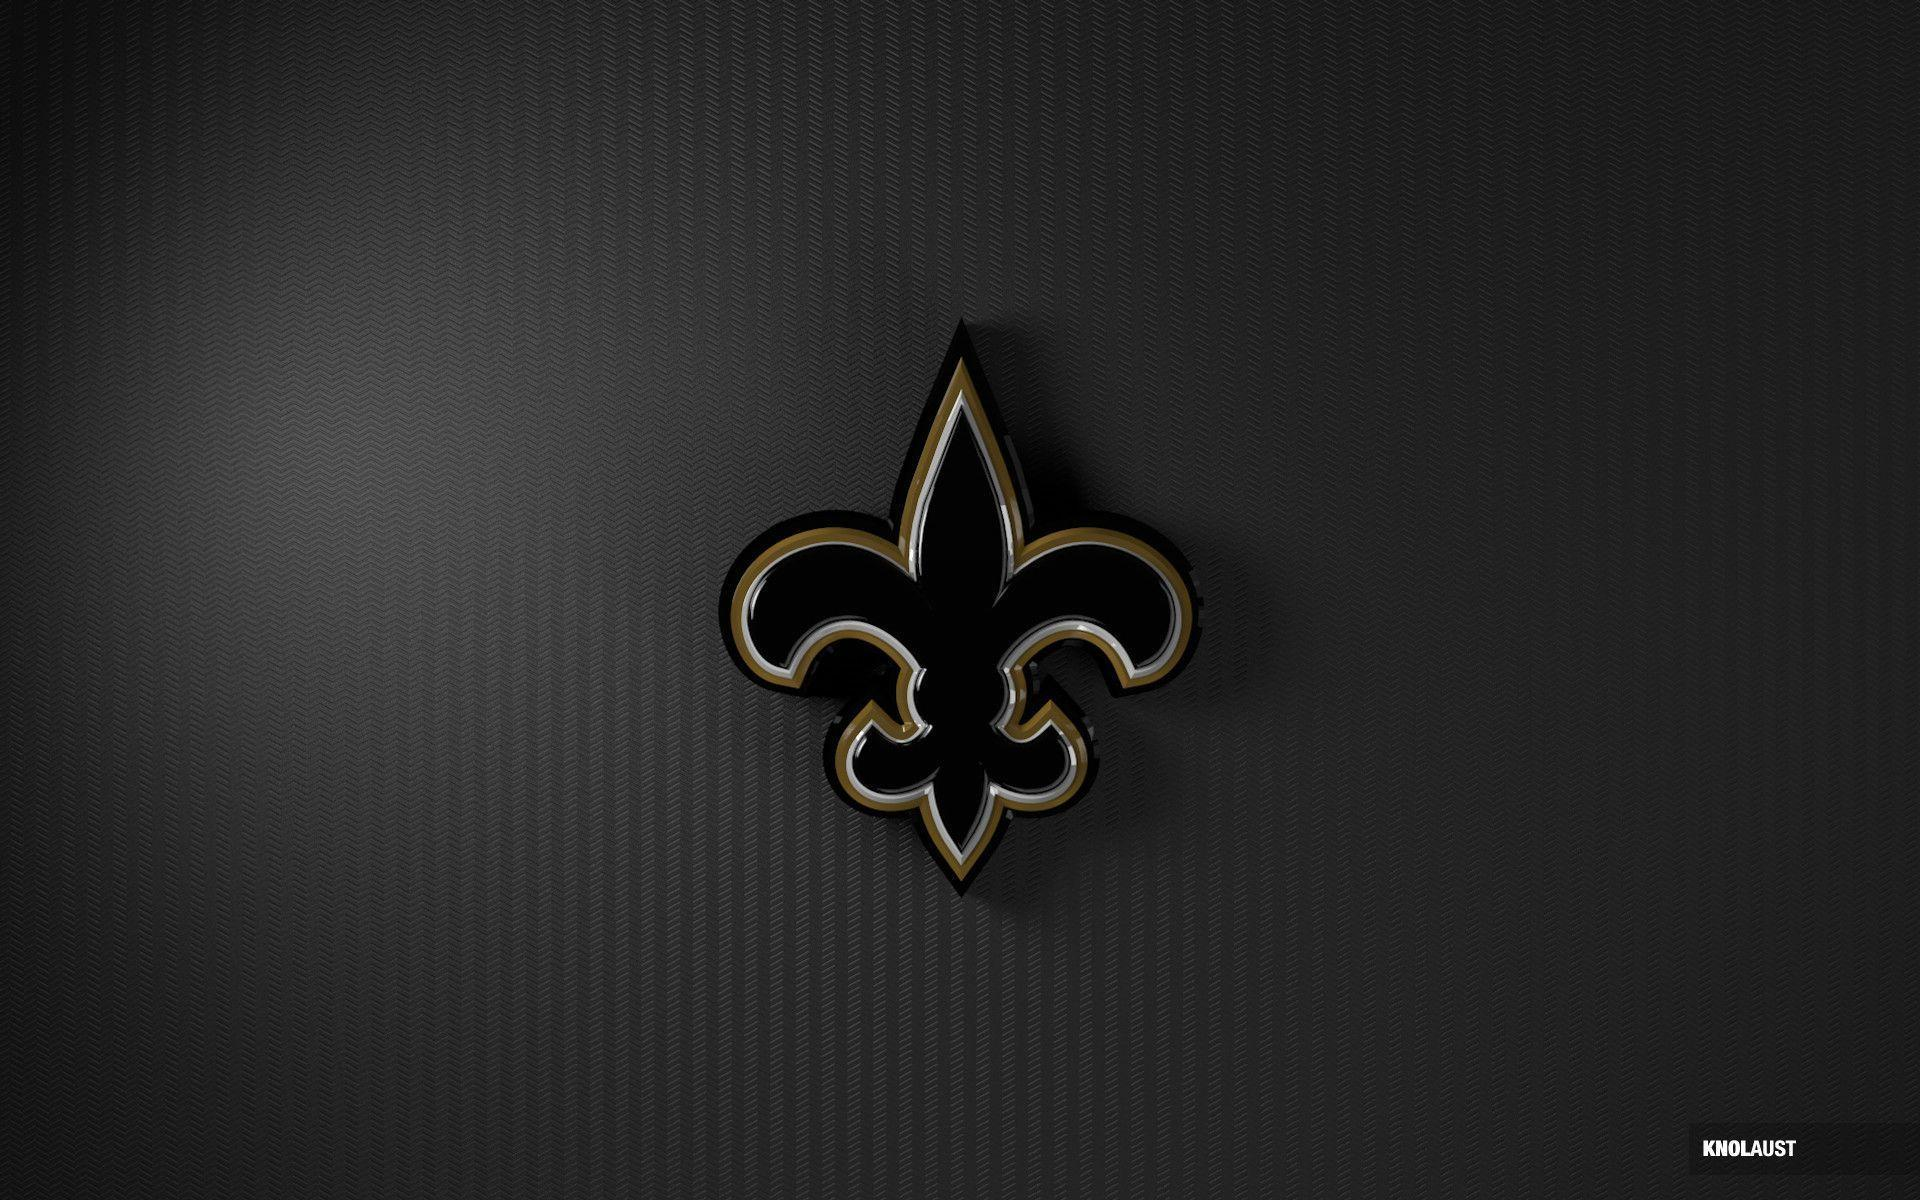 Image For > Nfl Football Wallpapers Saints